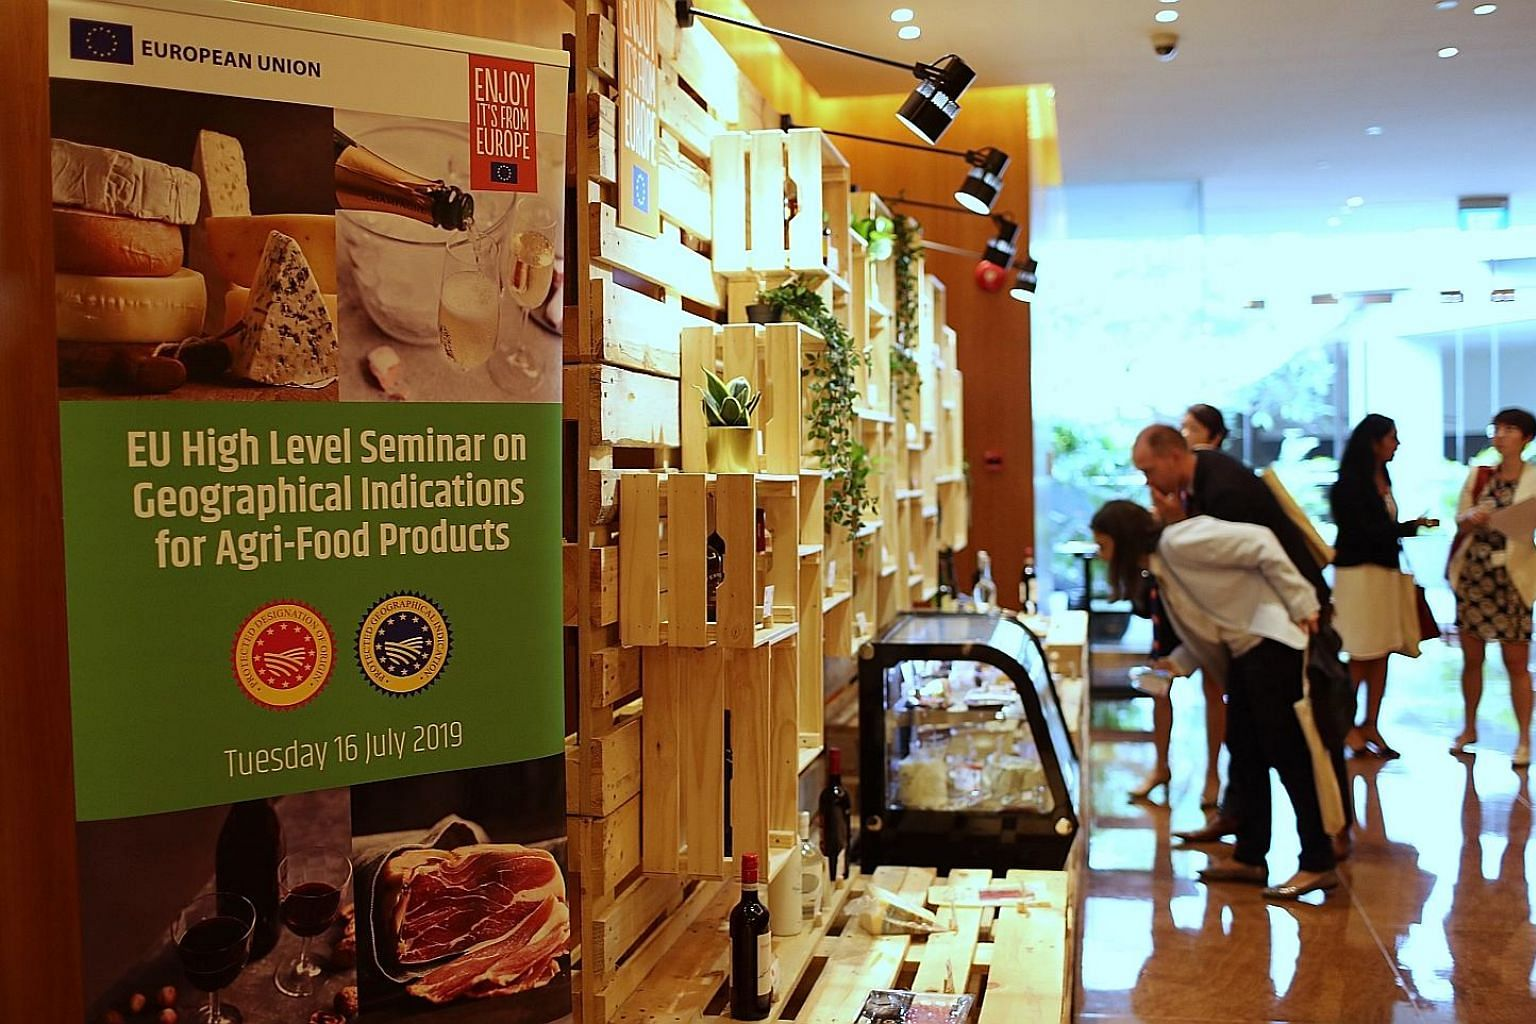 A seminar on Geographical Indications (GIs) for agri-food products was held yesterday at Grand Hyatt Hotel. A GI is a sign used on products that identifies them as originating from a specific geographical place and possessing qualities or a reputatio